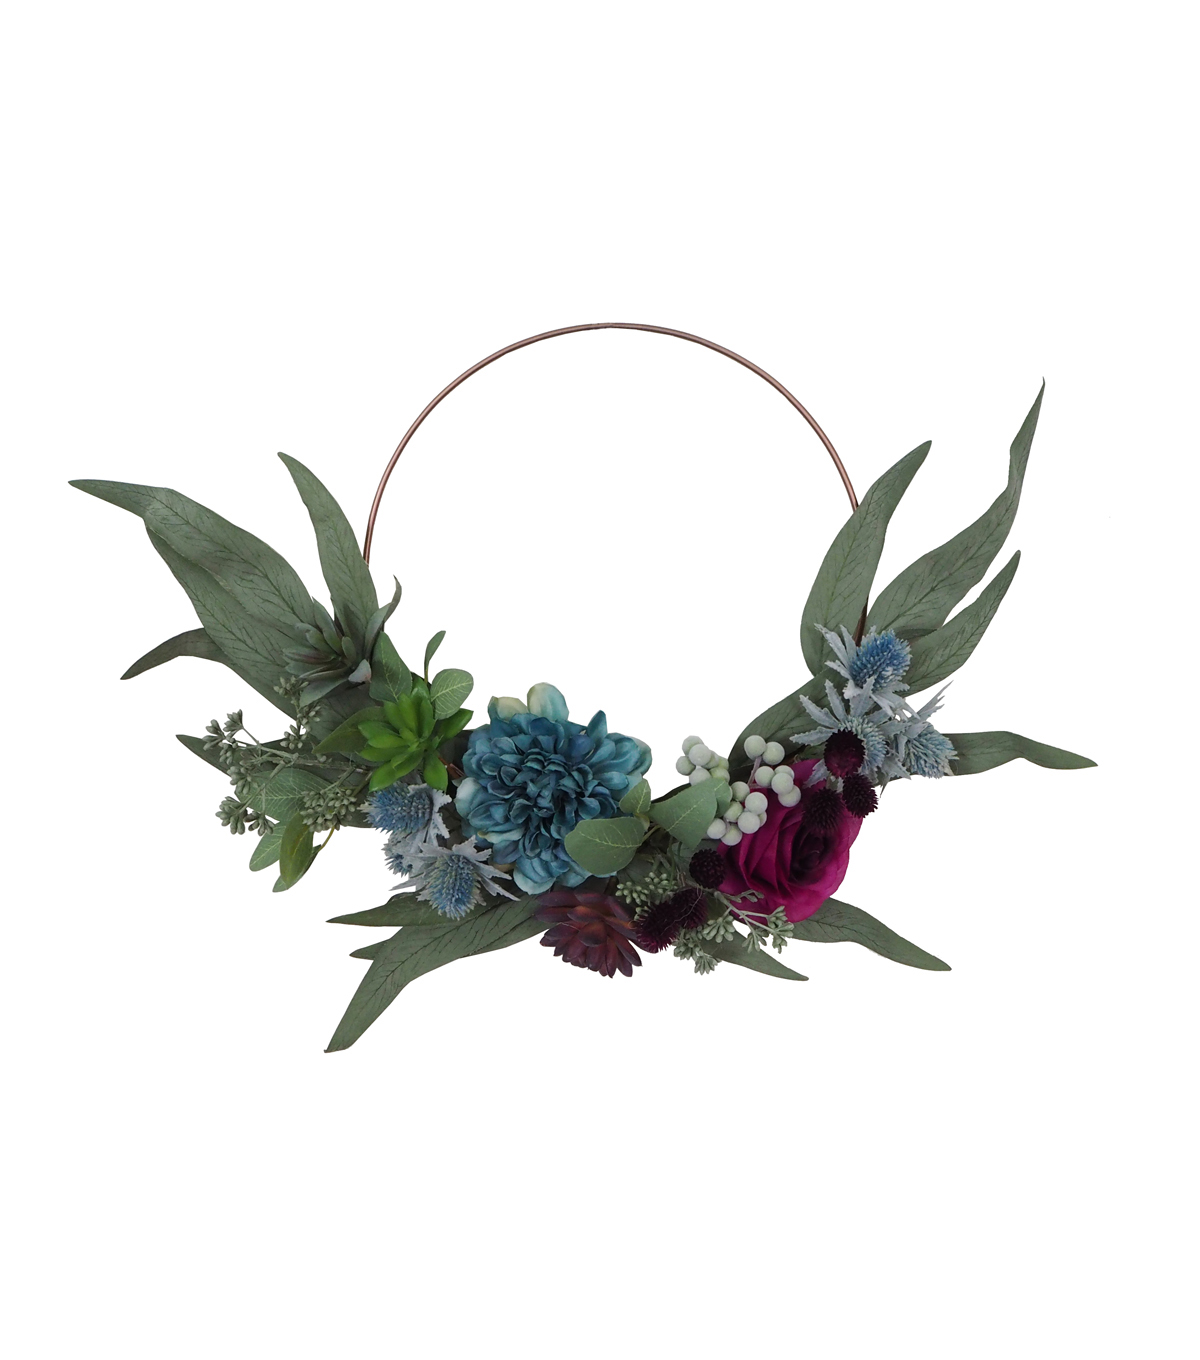 Blooming Autumn Small Succulent & Leaf Mini Wreath